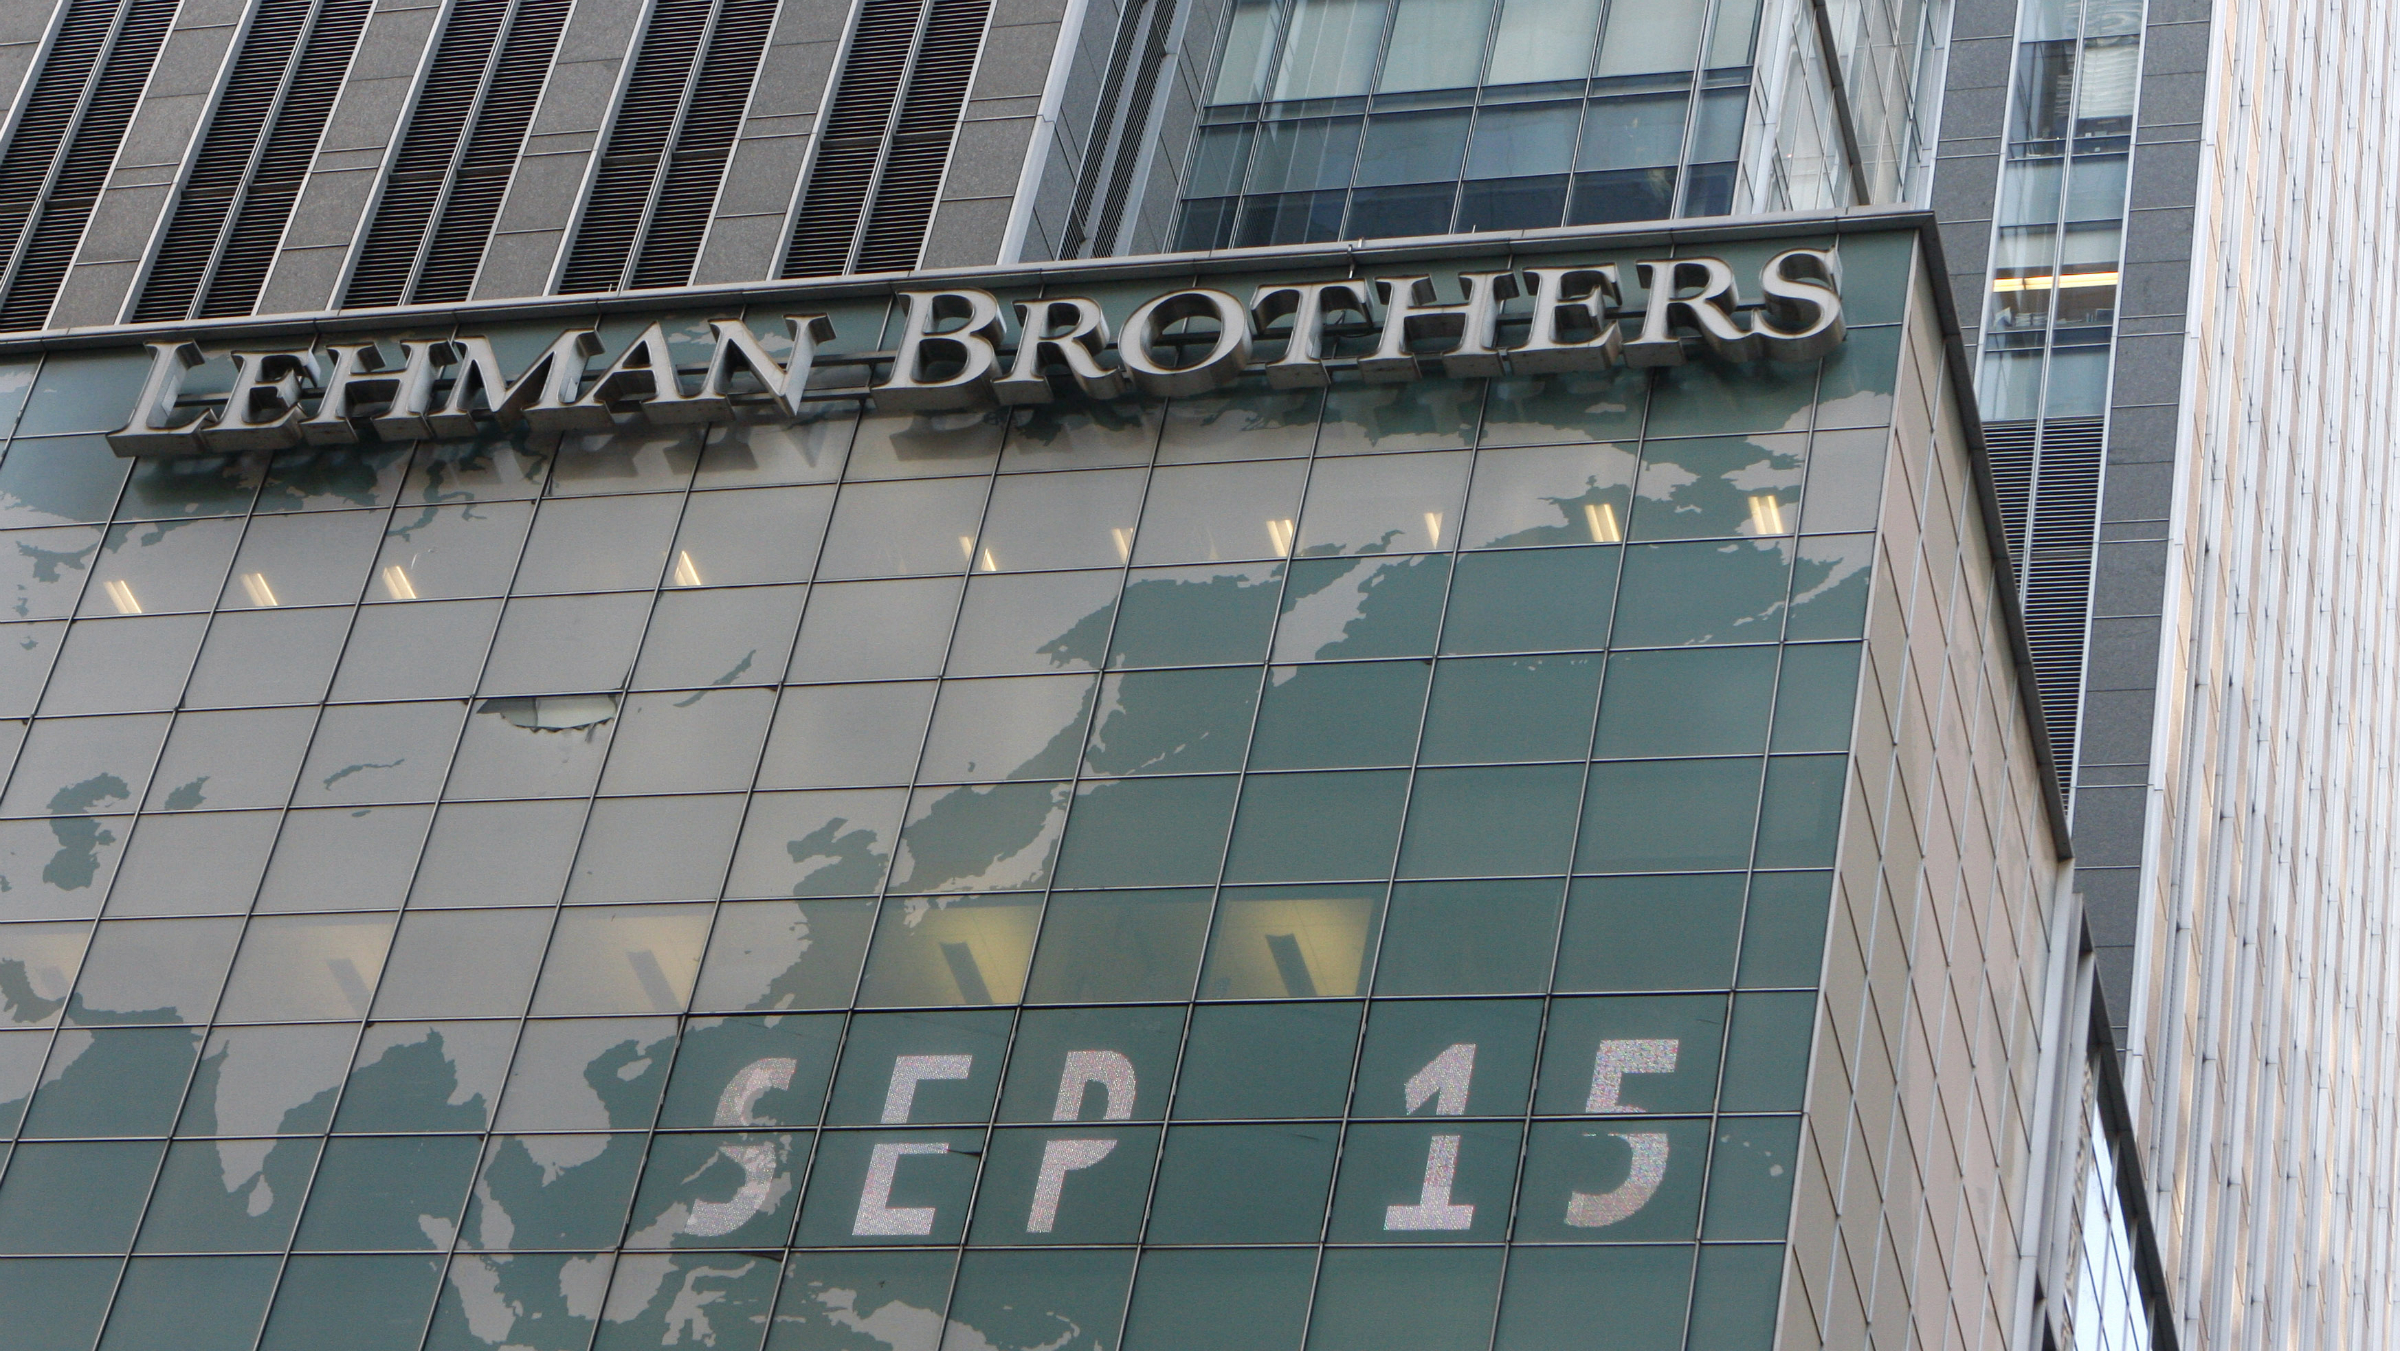 The Lehman Brothers building is pictured in New York September 15, 2008. Stunned and angry, Lehman Brothers' employees packed their bags at company headquarters in New York, with some bitterness over the 158-year-old company's failure aimed at Chief Executive Richard Fuld. REUTERS/Joshua Lott